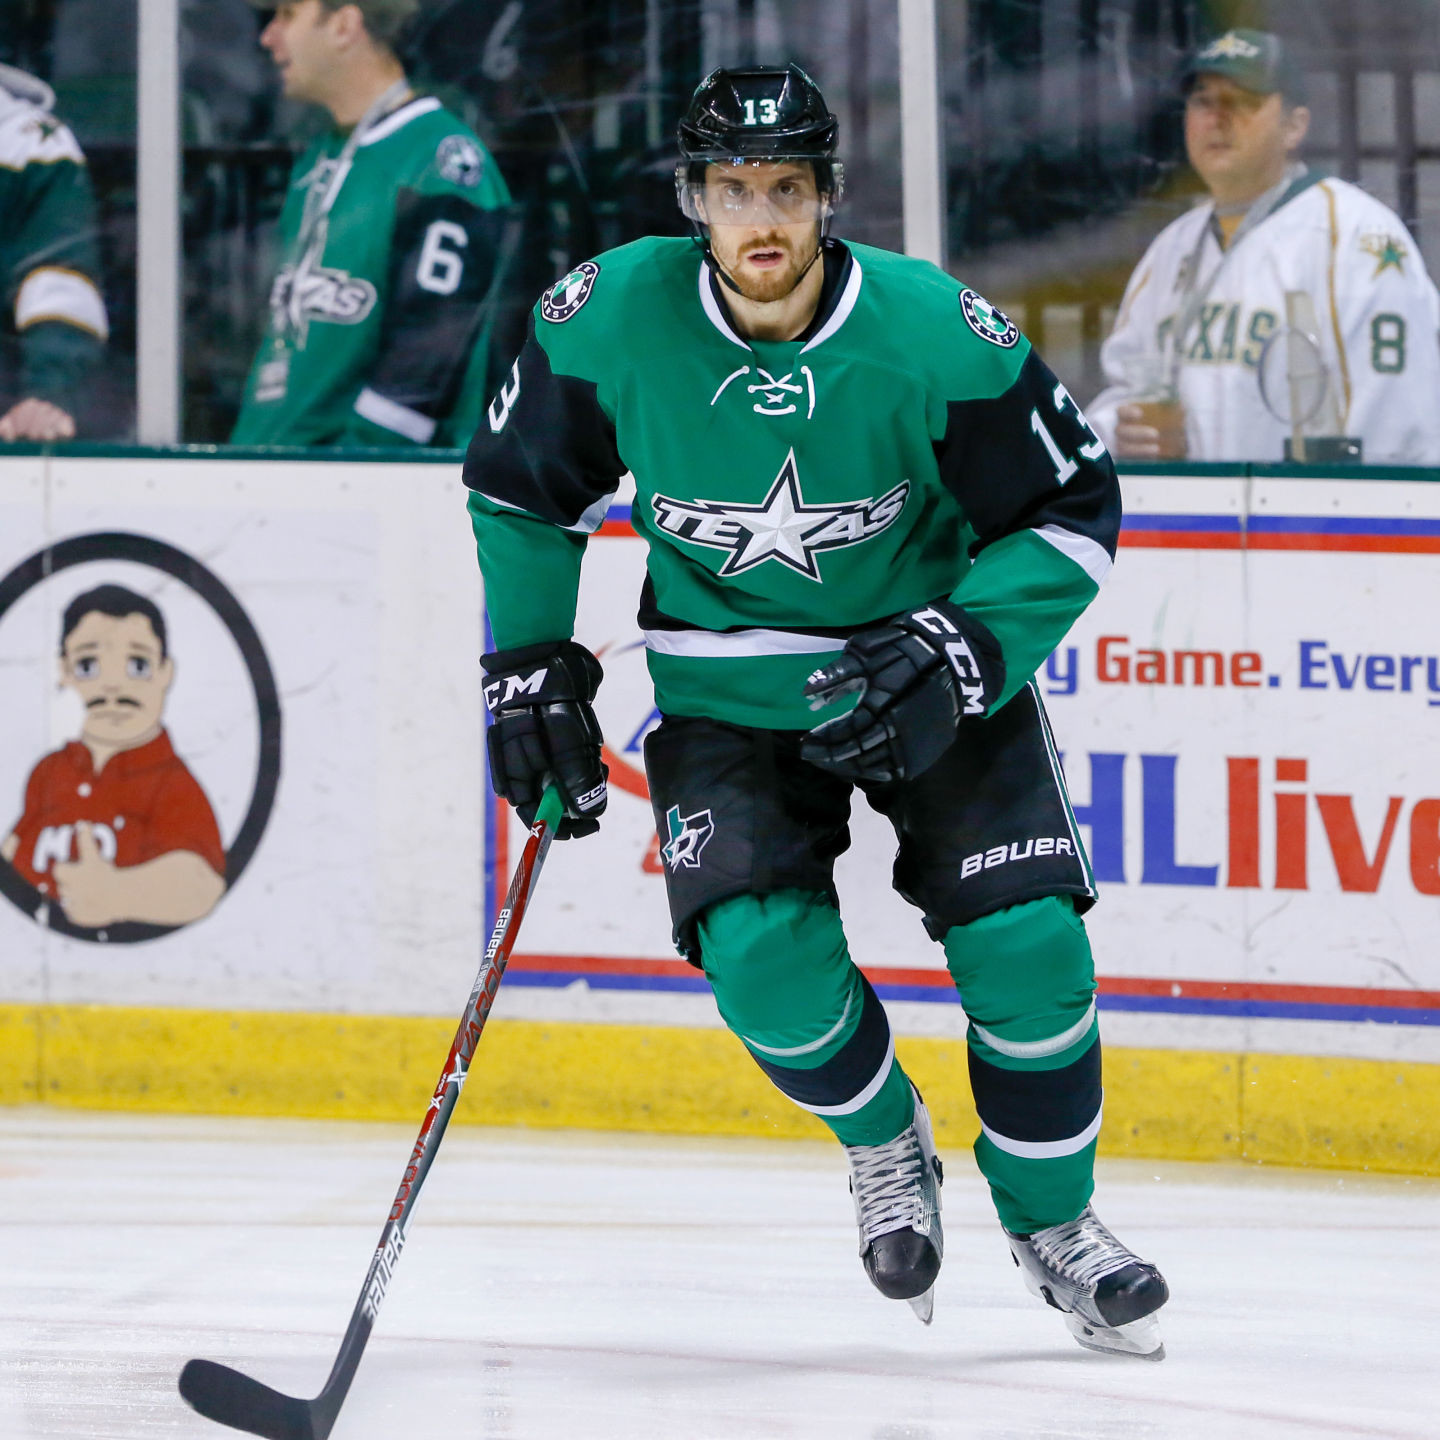 Patrik Nemeth scored a goal and had an assist in his return to the Texas Stars in Friday night's win against the Cleveland Monsters.